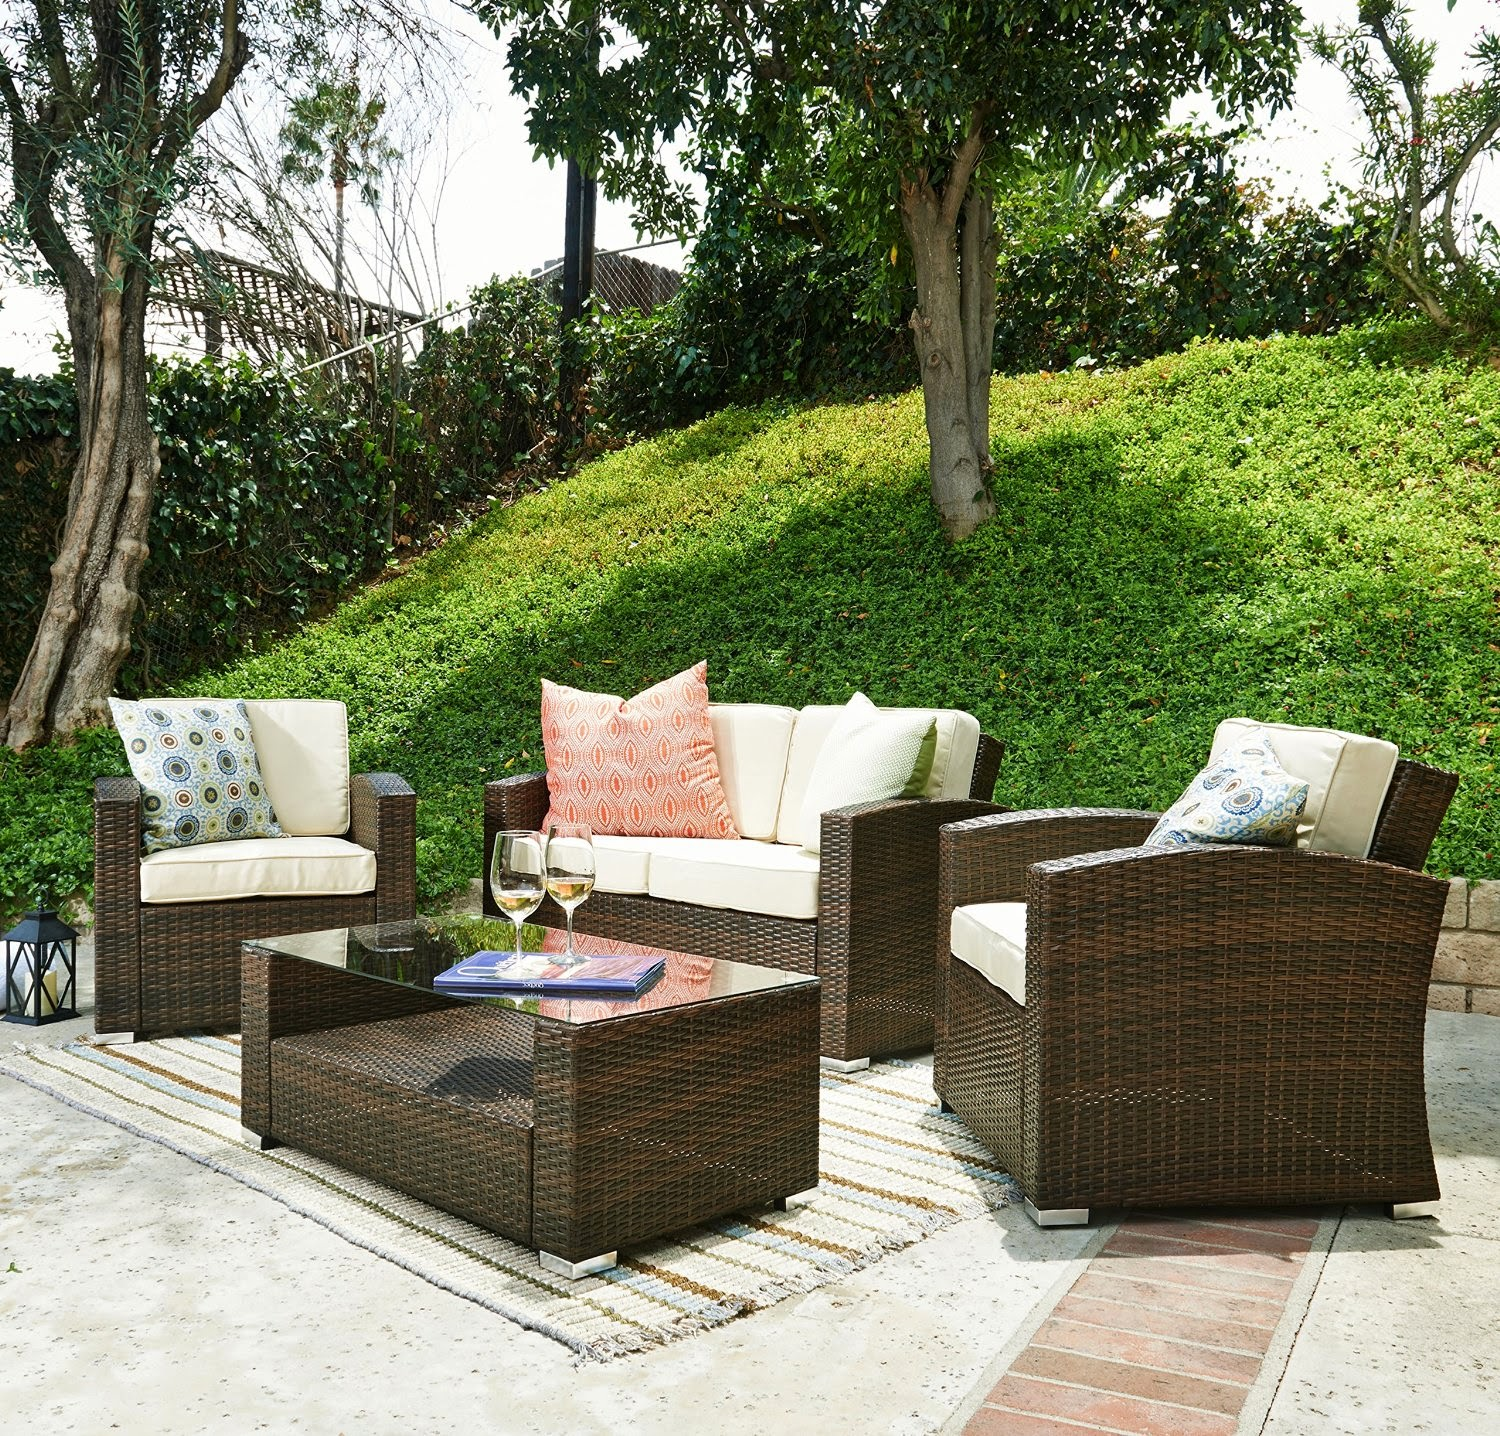 Discount Outdoor Sofa Set Fix Loose Legs Special Sale Off 58 For Furniture